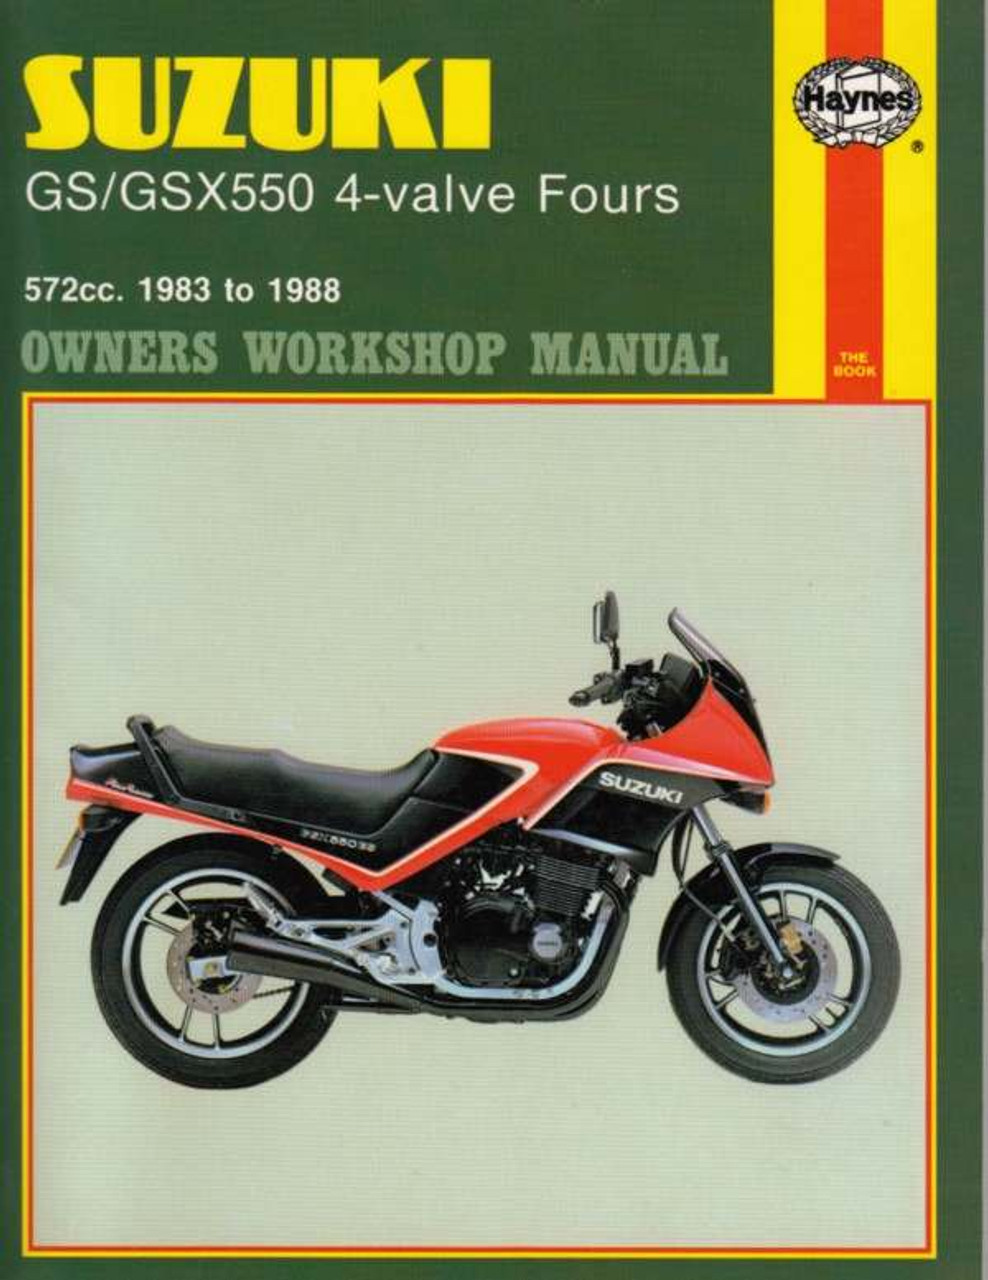 suzuki gs gsx550 4 valve fours 572cc 1983 1988 workshop manual rh automotobookshop com au suzuki gs500e service manual pdf suzuki gs500e service manual